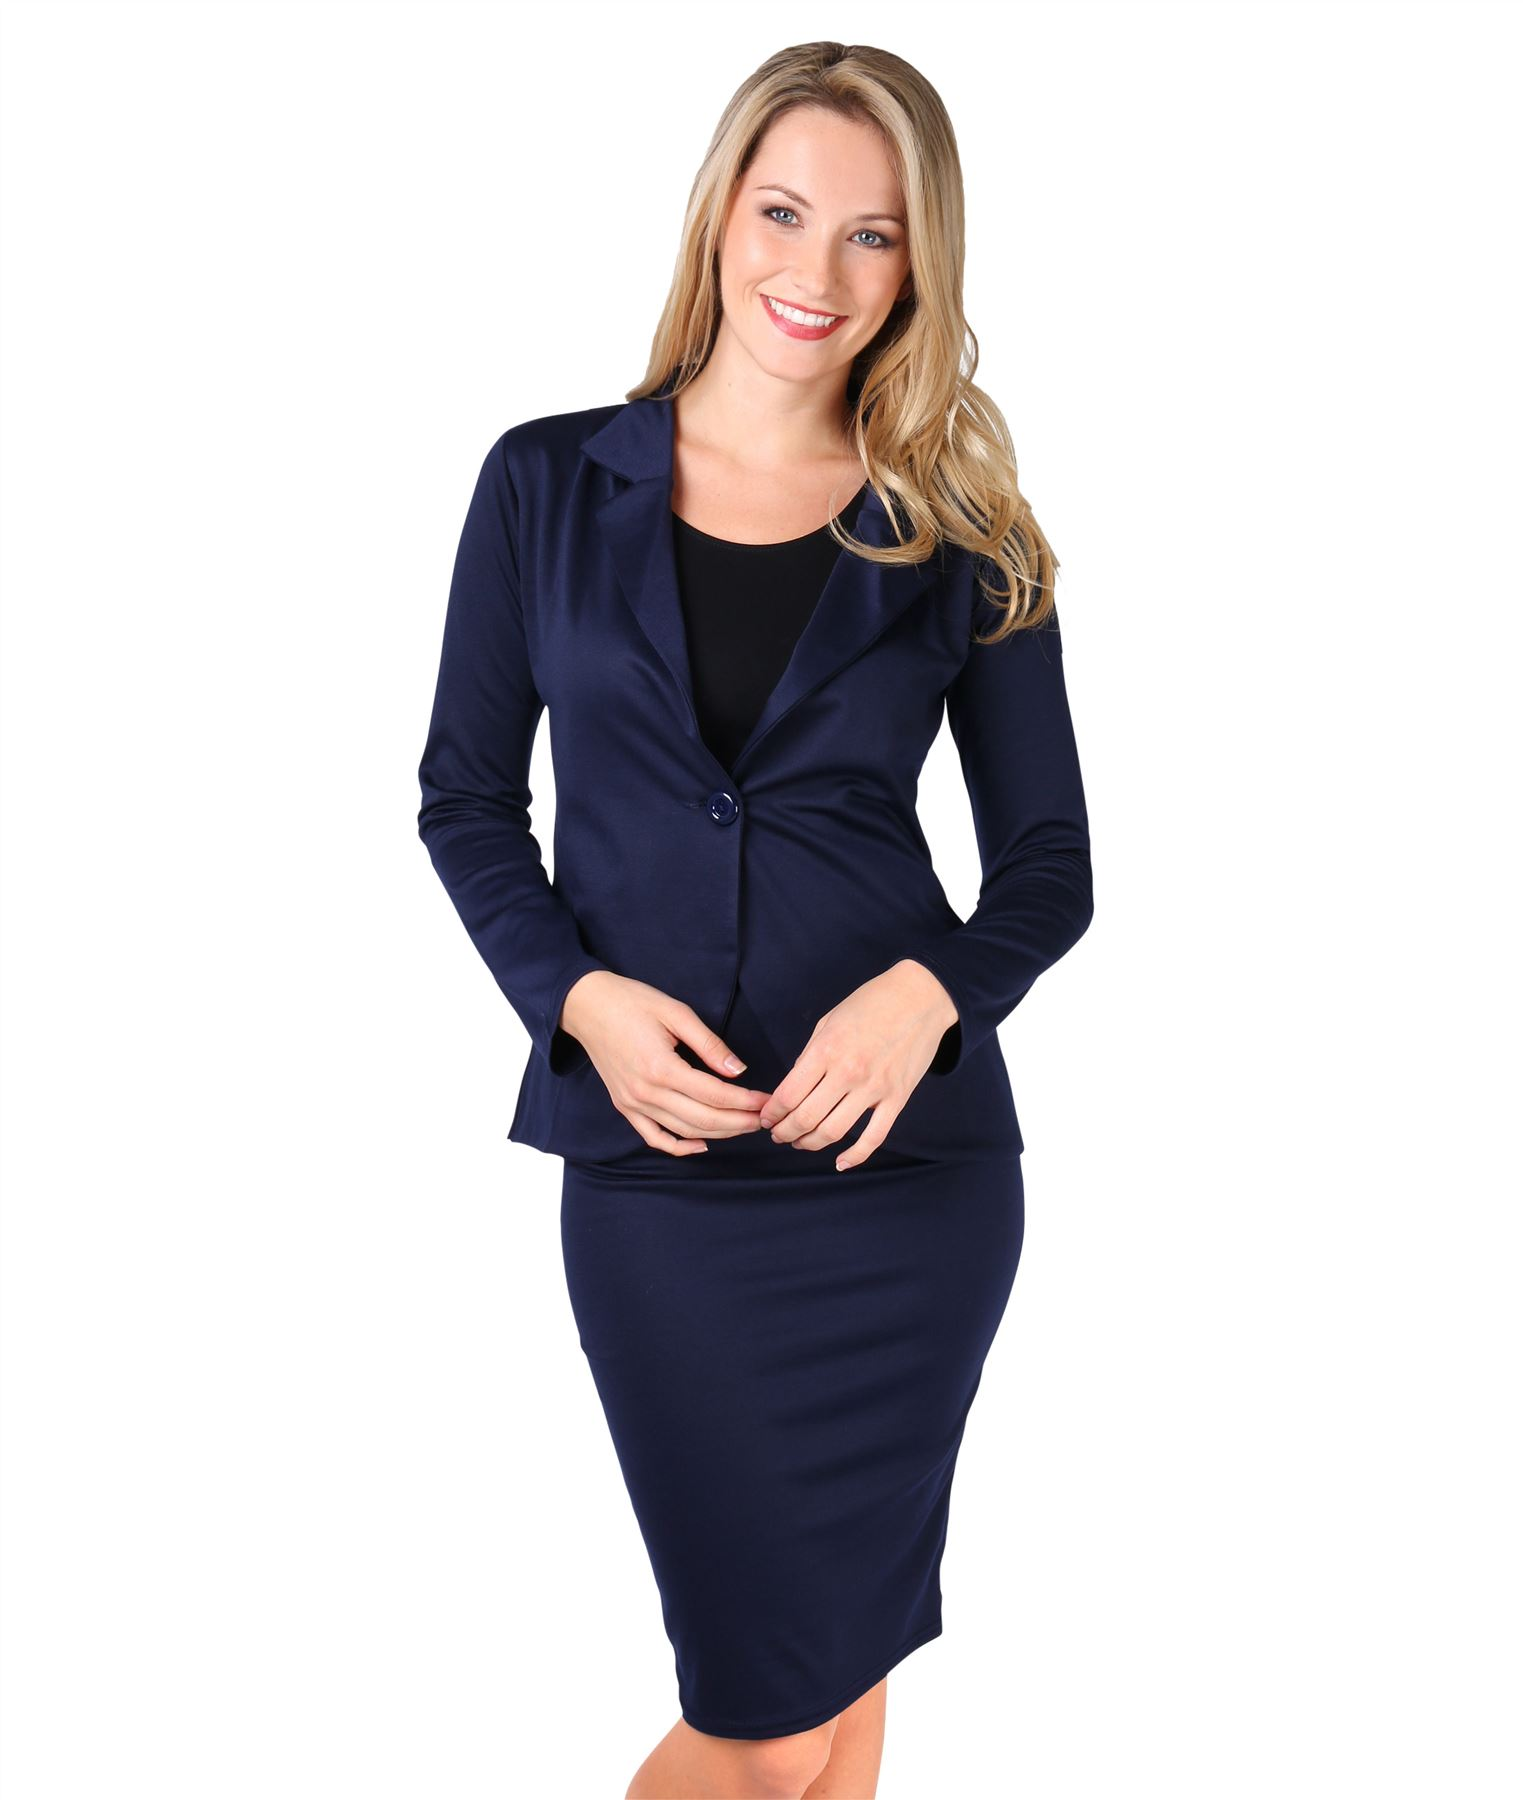 Womens-Ladies-Pencil-Skirt-Midi-Knee-Long-High-Waist-Work-Office-Business-Smart thumbnail 9